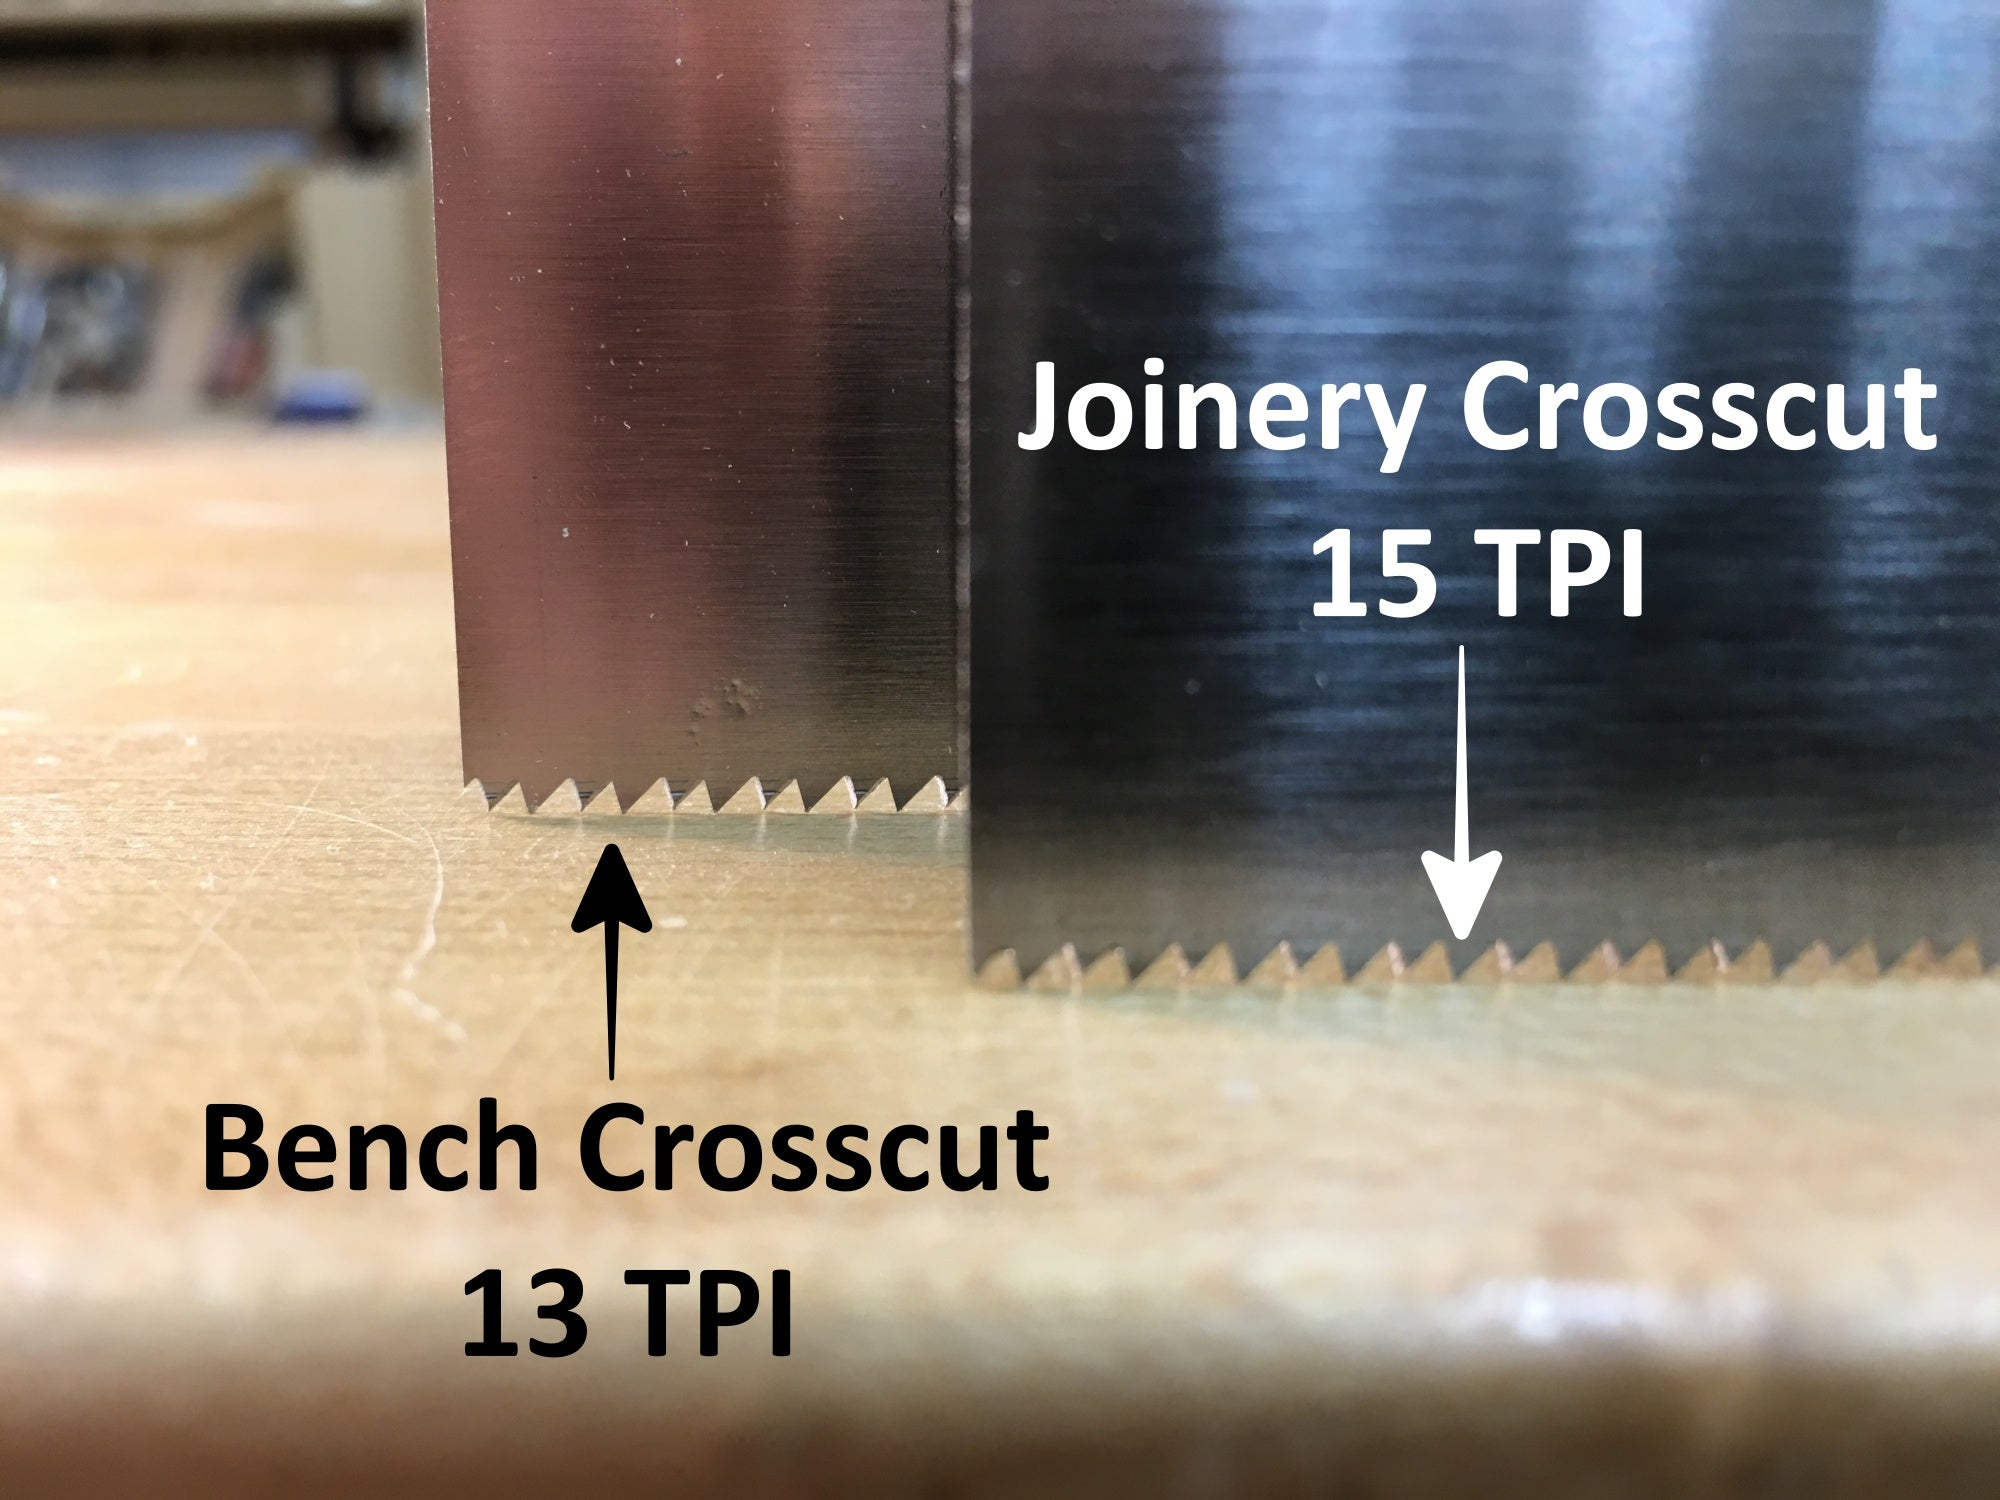 Rob Cosman's Professional Bench Crosscut Saw